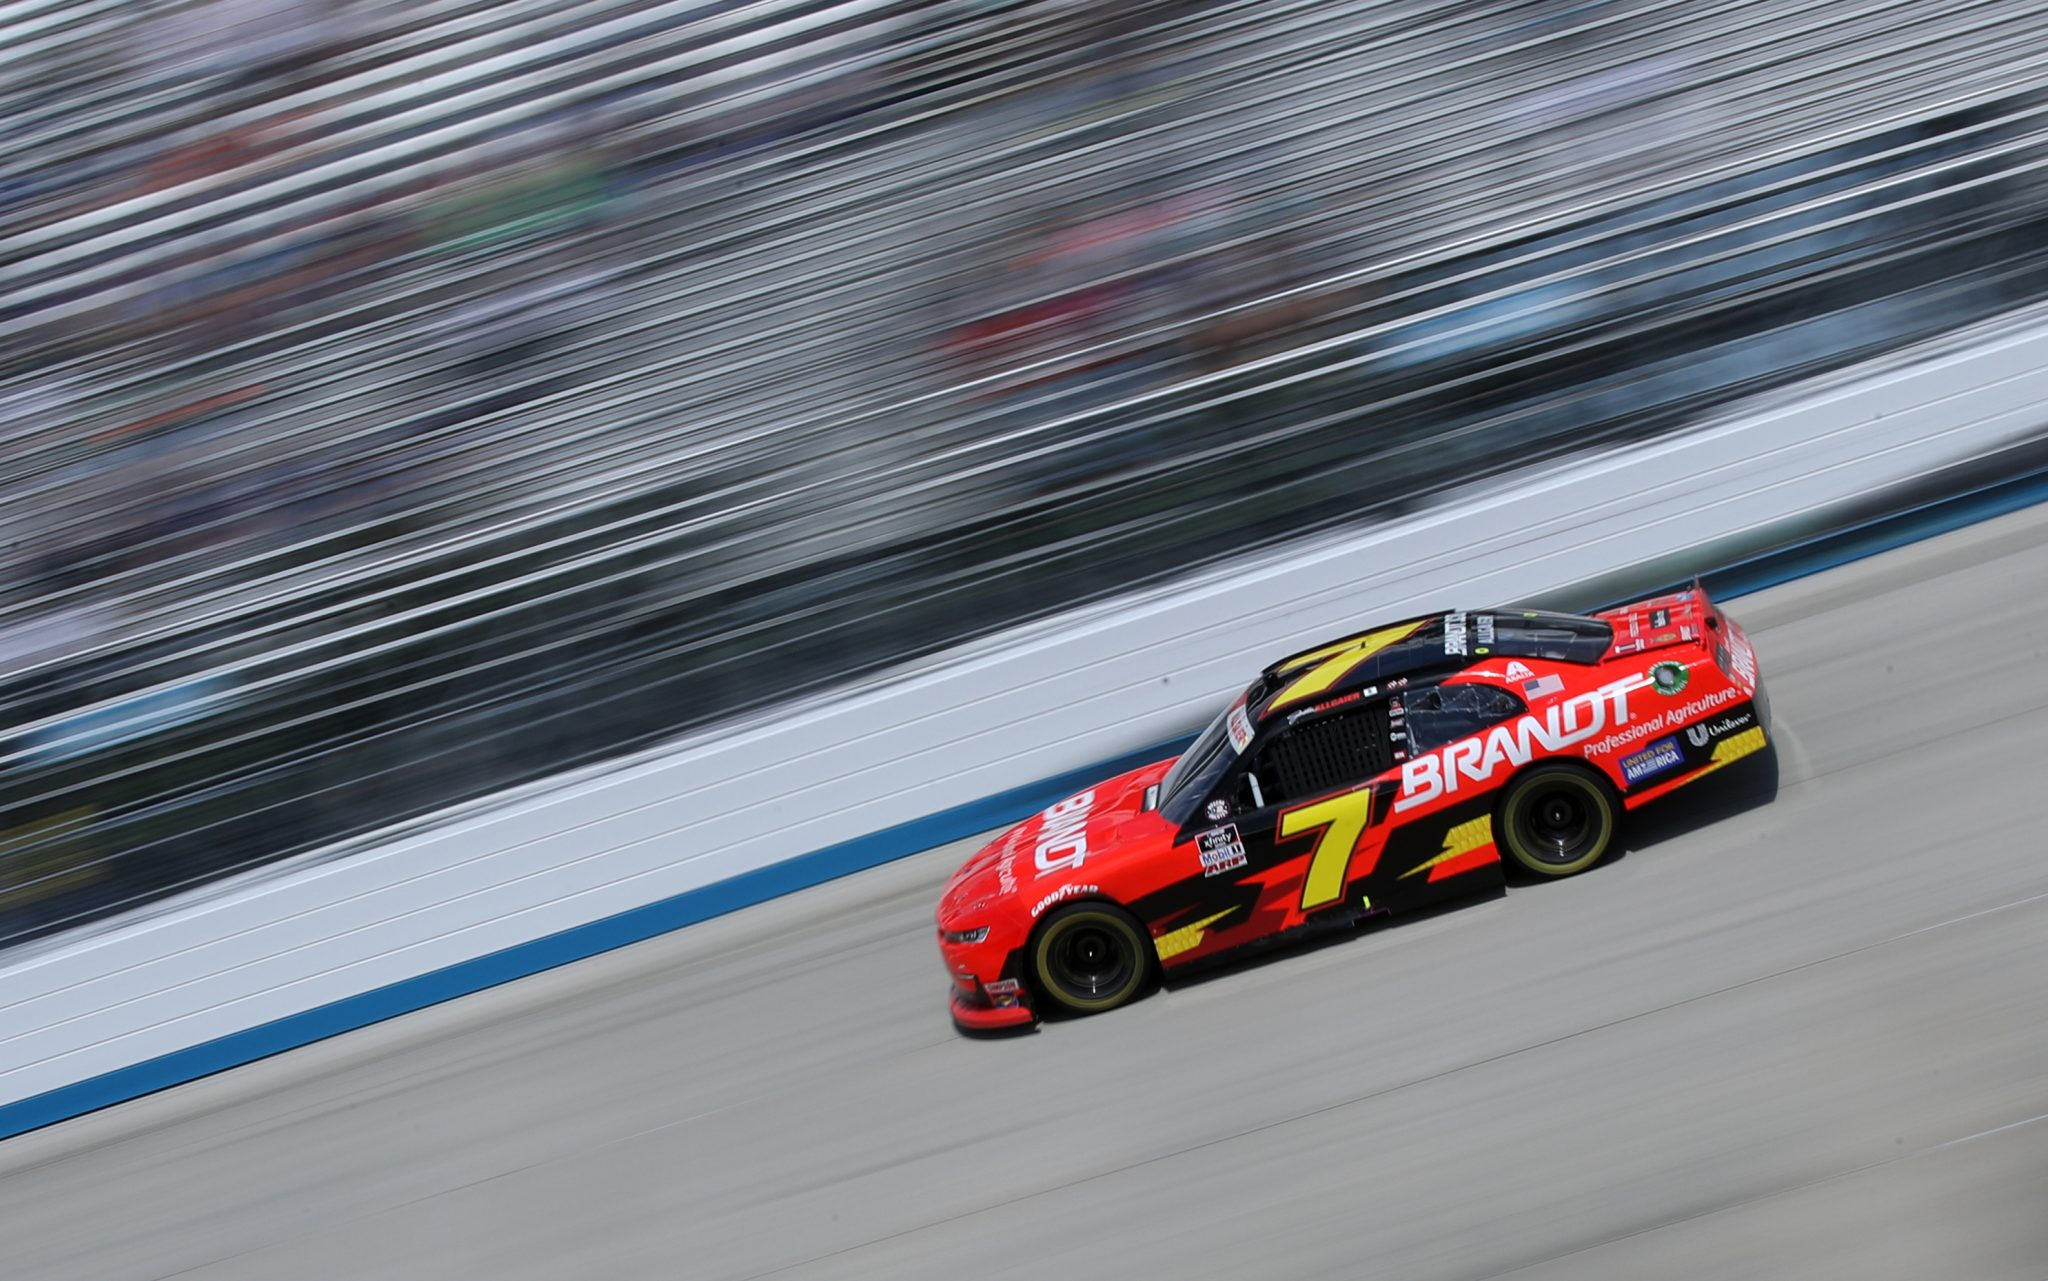 DOVER, DELAWARE - MAY 15: Justin Allgaier, driver of the #7 BRANDT Chevrolet, races during the NASCAR Xfinity Series Drydene 200 race at Dover International Speedway on May 15, 2021 in Dover, Delaware. (Photo by Sean Gardner/Getty Images) | Getty Images